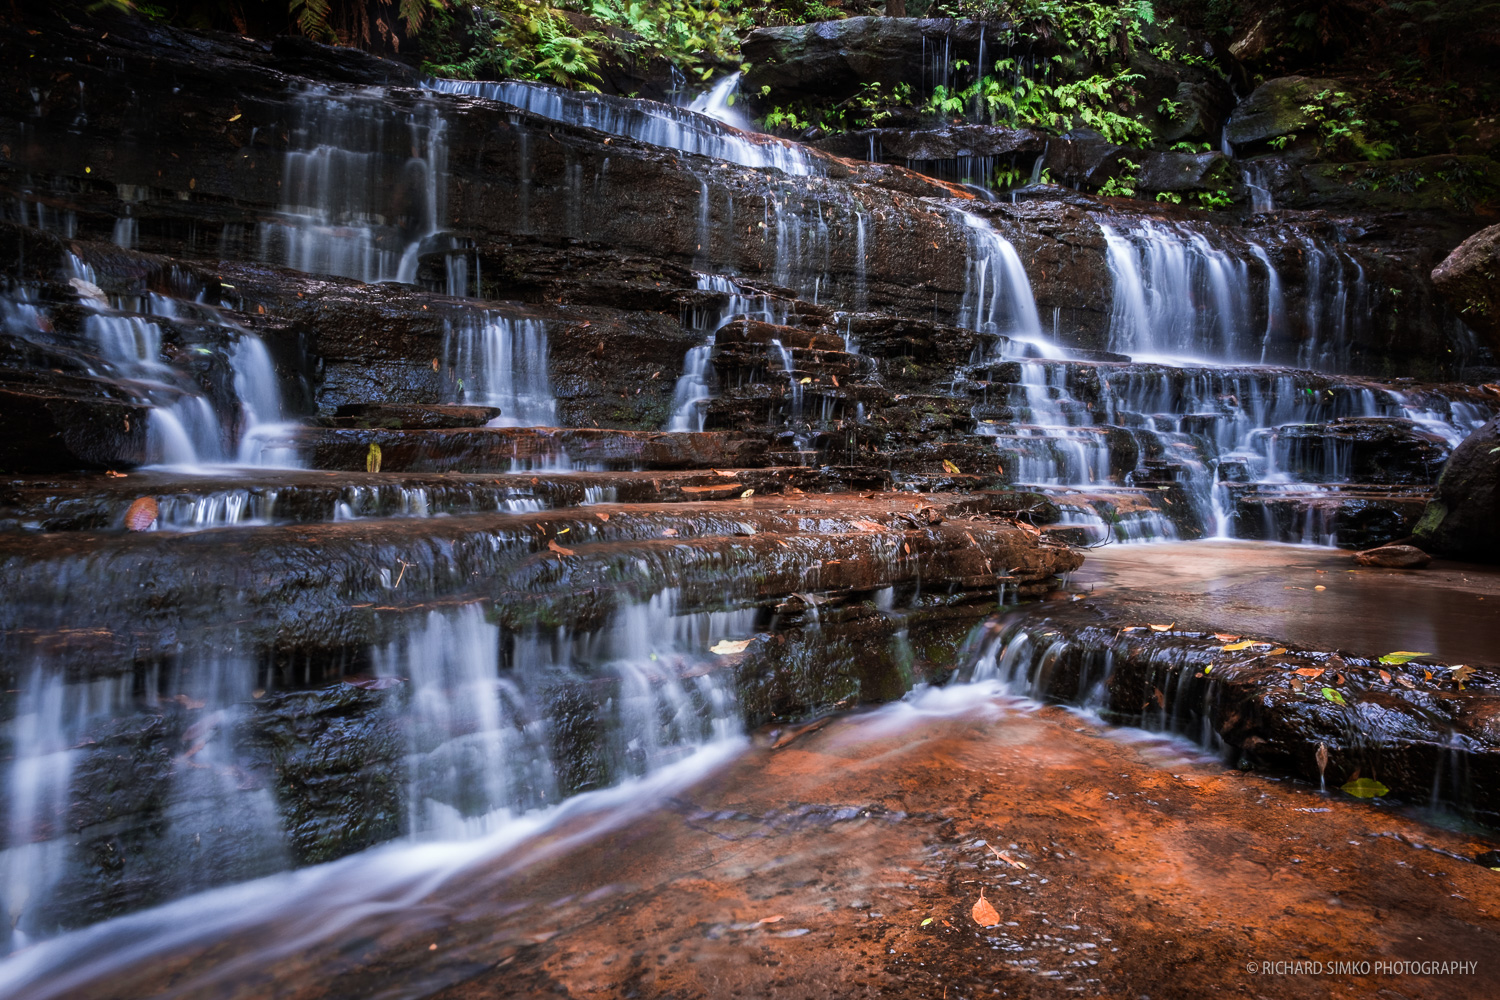 One of the bigger cascades at Wentworth Falls.track.